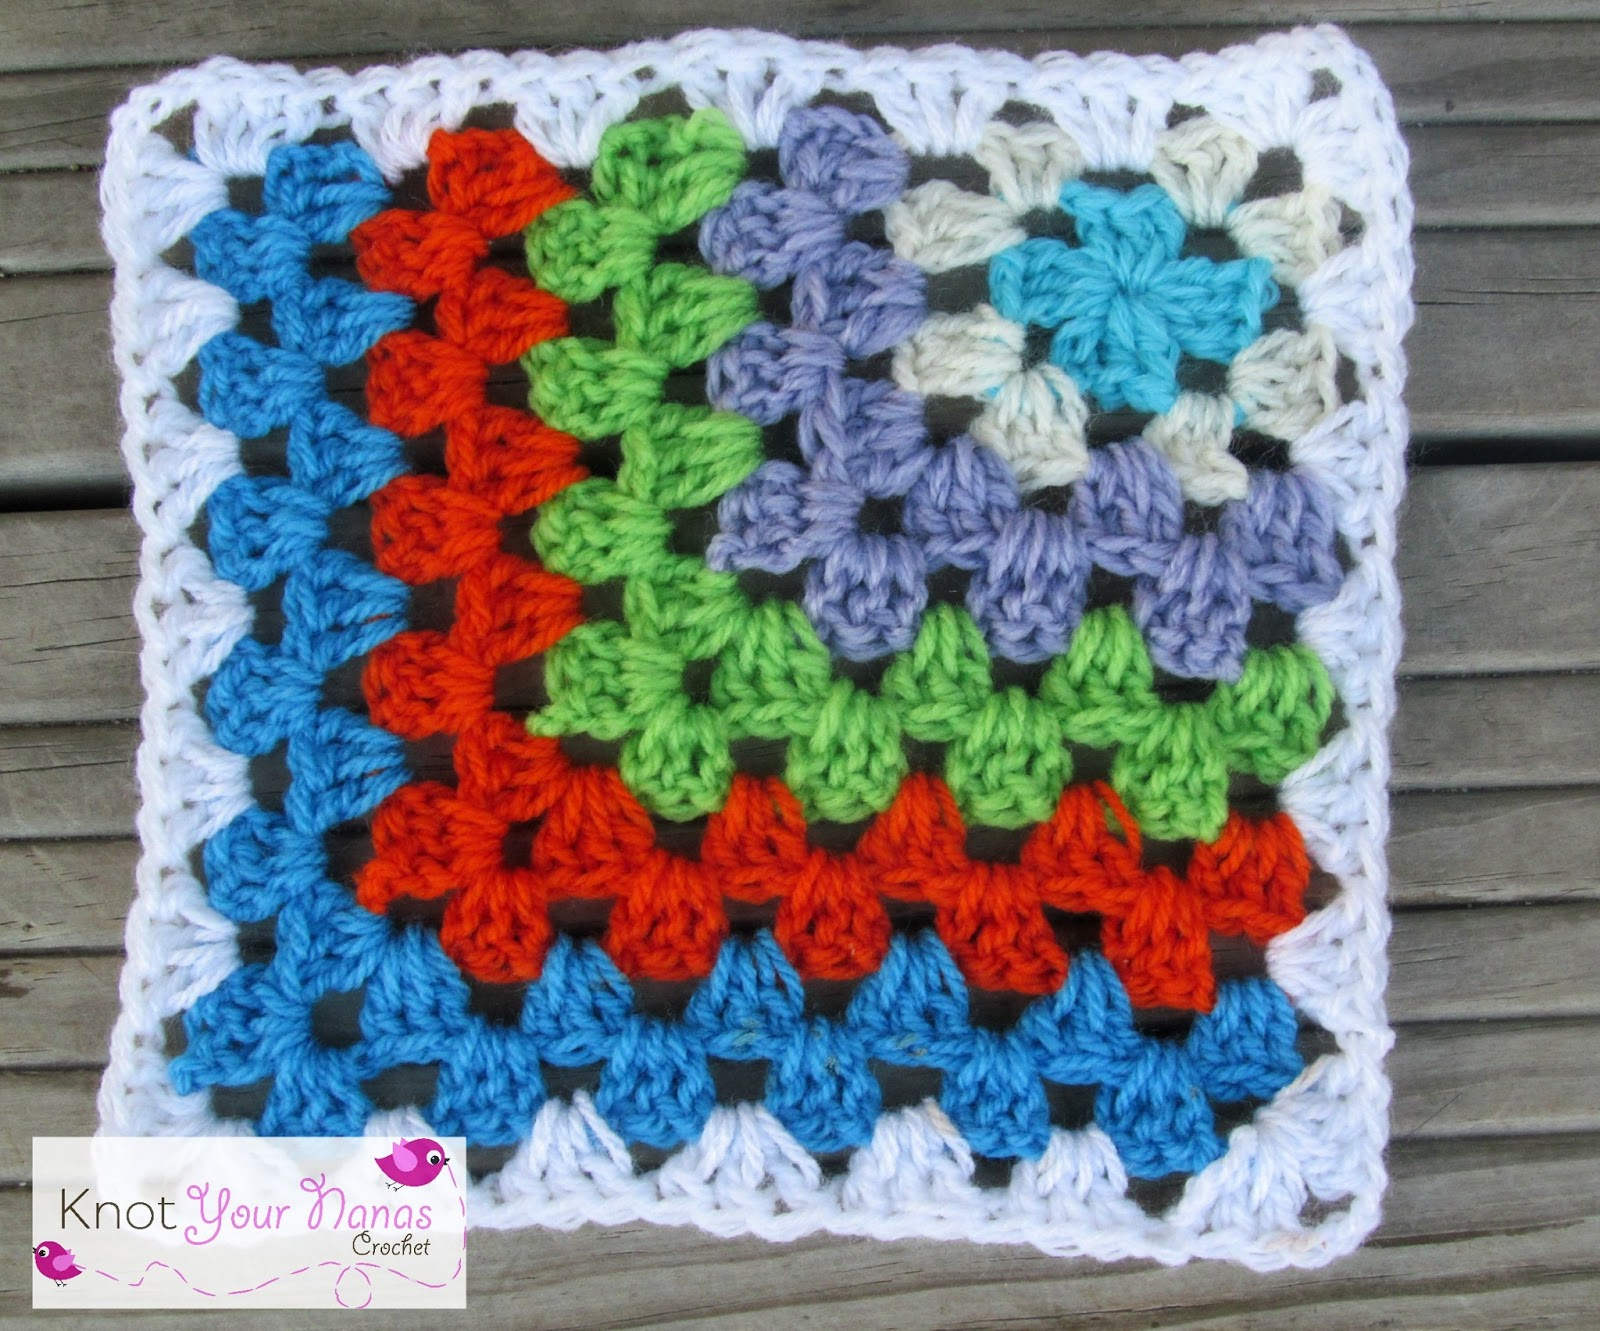 Crochet Granny Square : Knot Your Nanas Crochet: Granny Square CAL (Week 7)